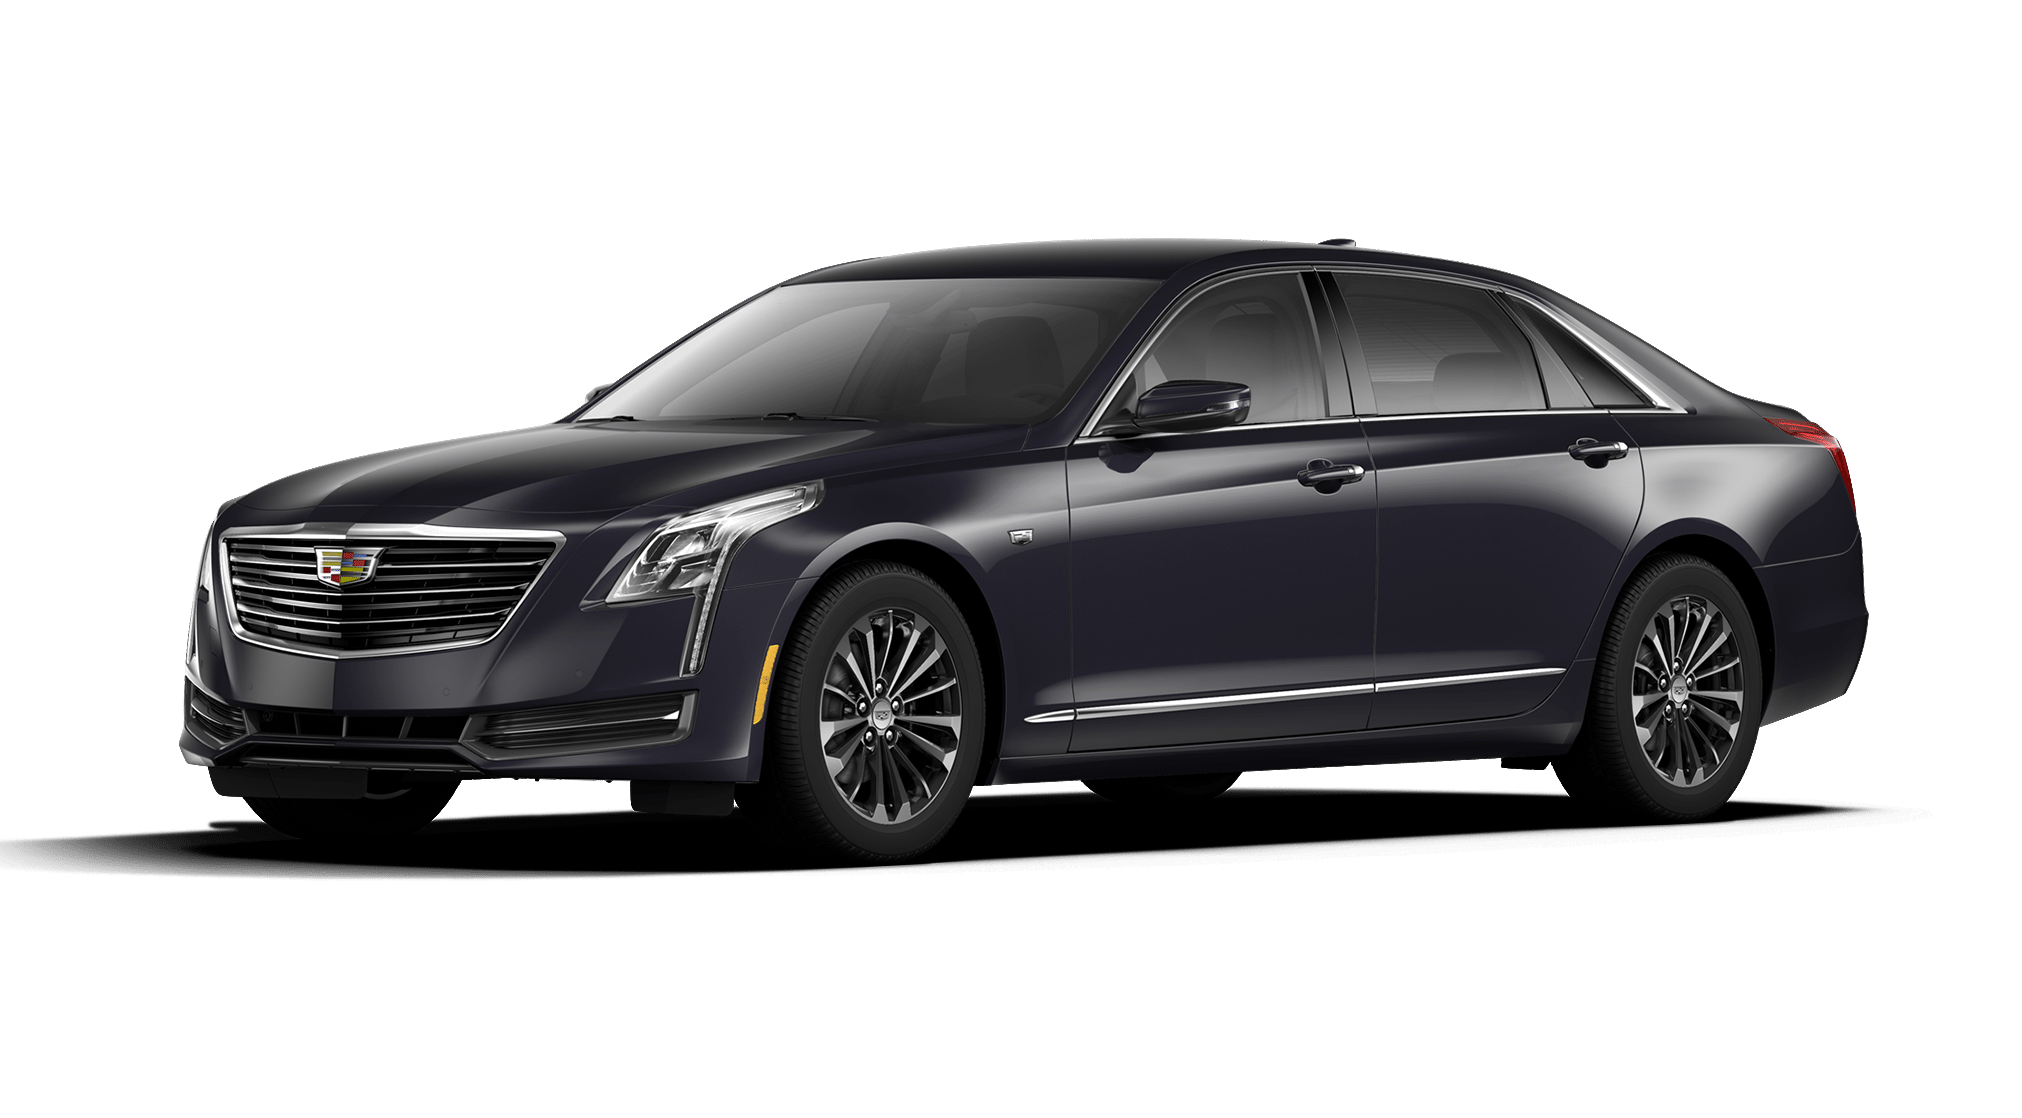 2017 Dark Adriatic Blue Cadillac CT6